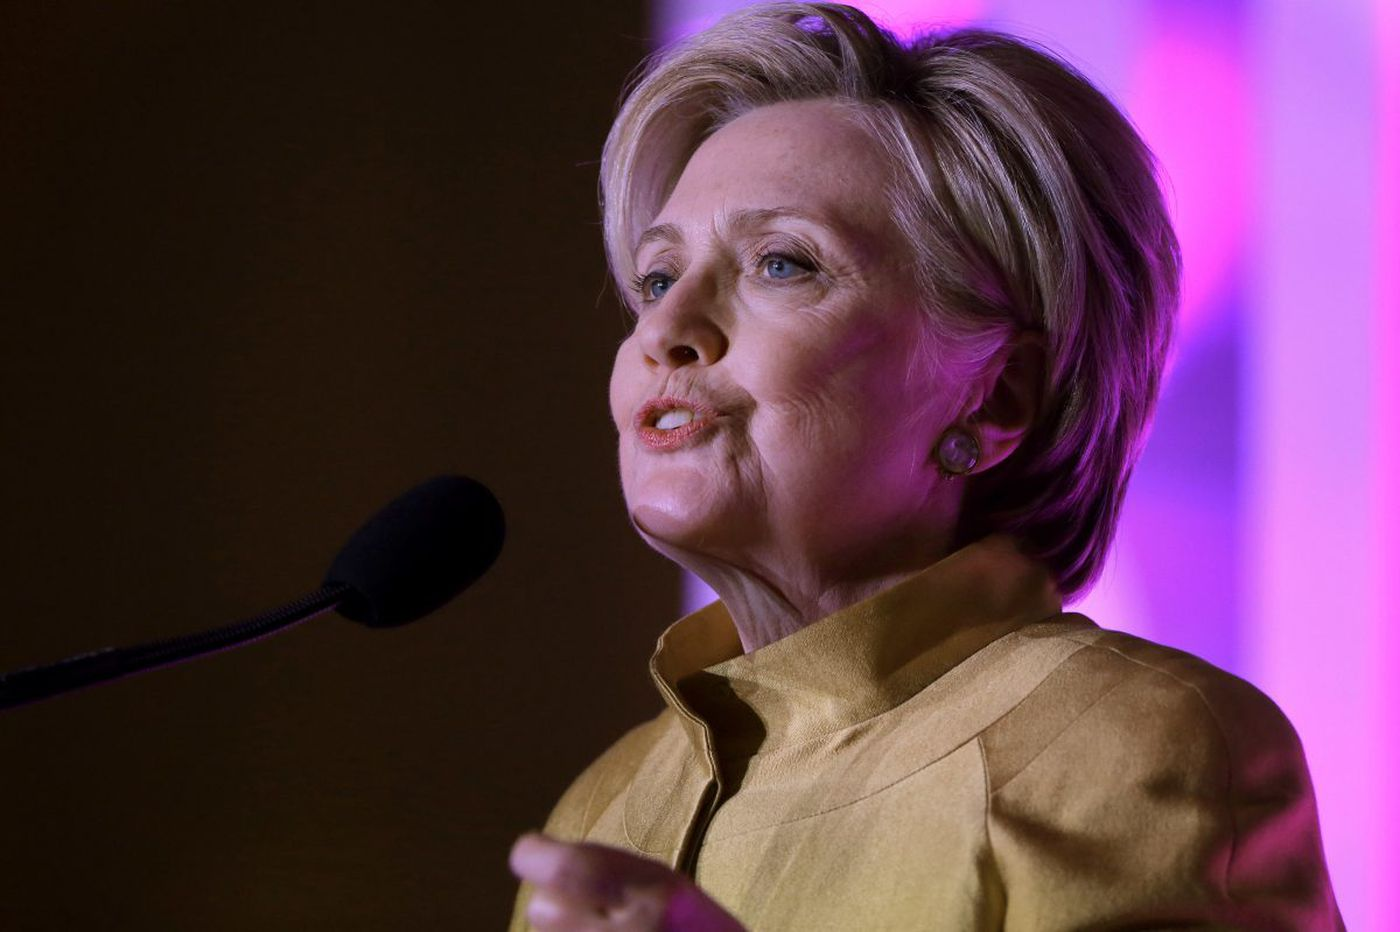 Does the Hillary Clinton email matter need a fresh look? Yes. | Opinion